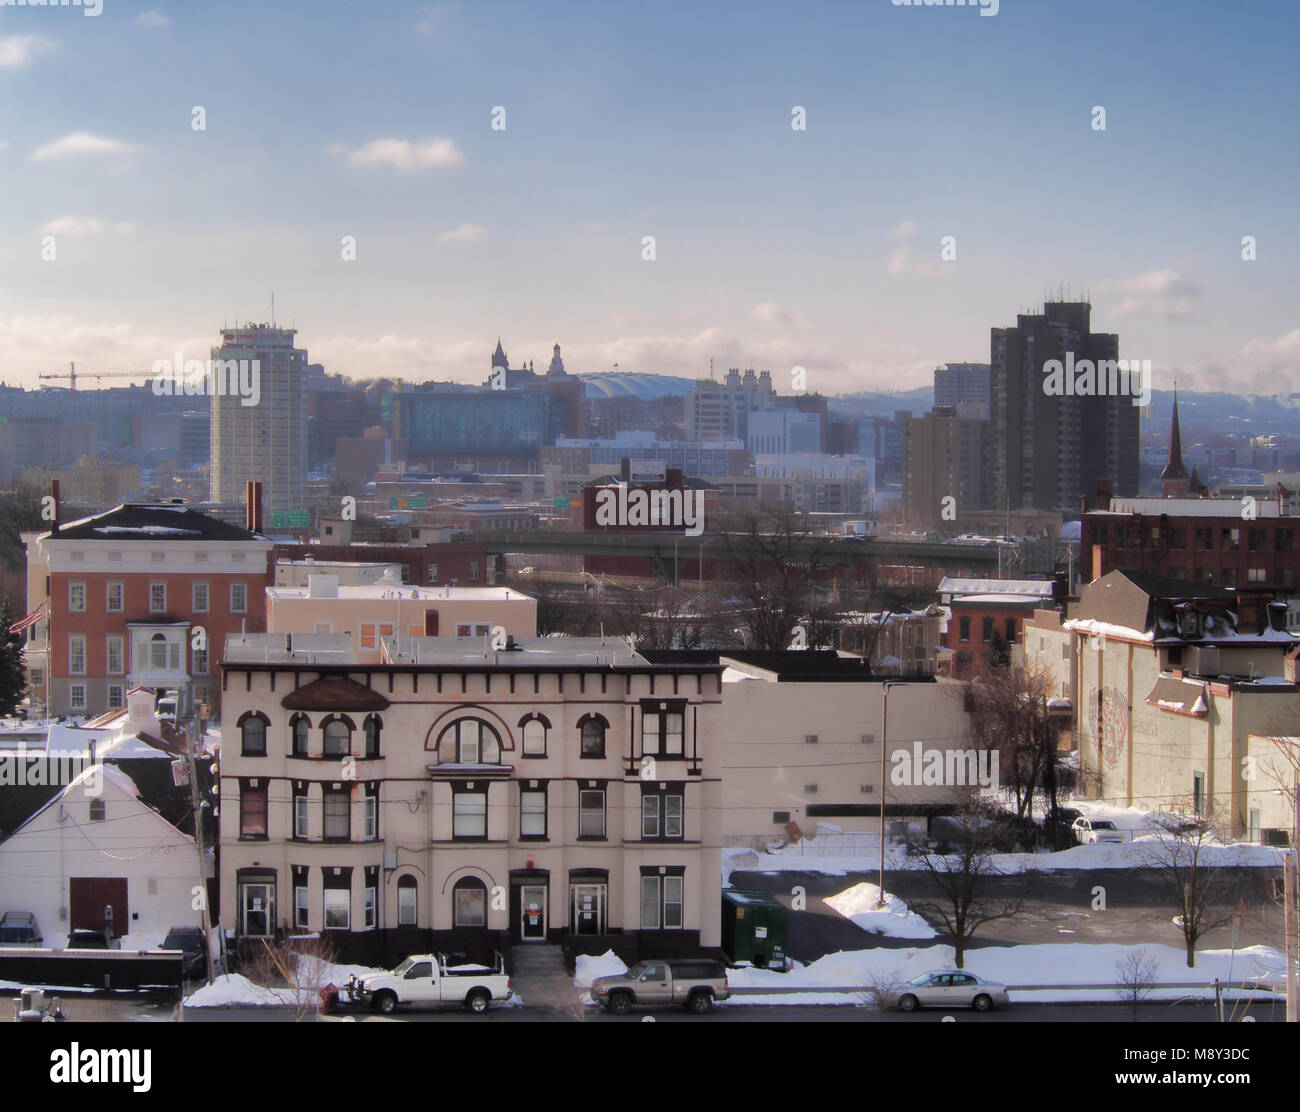 Syracuse, New York, USA. March 17, 2018. View of Willow Street on the northside of Syracuse, NY with the Syracuse - Stock Image